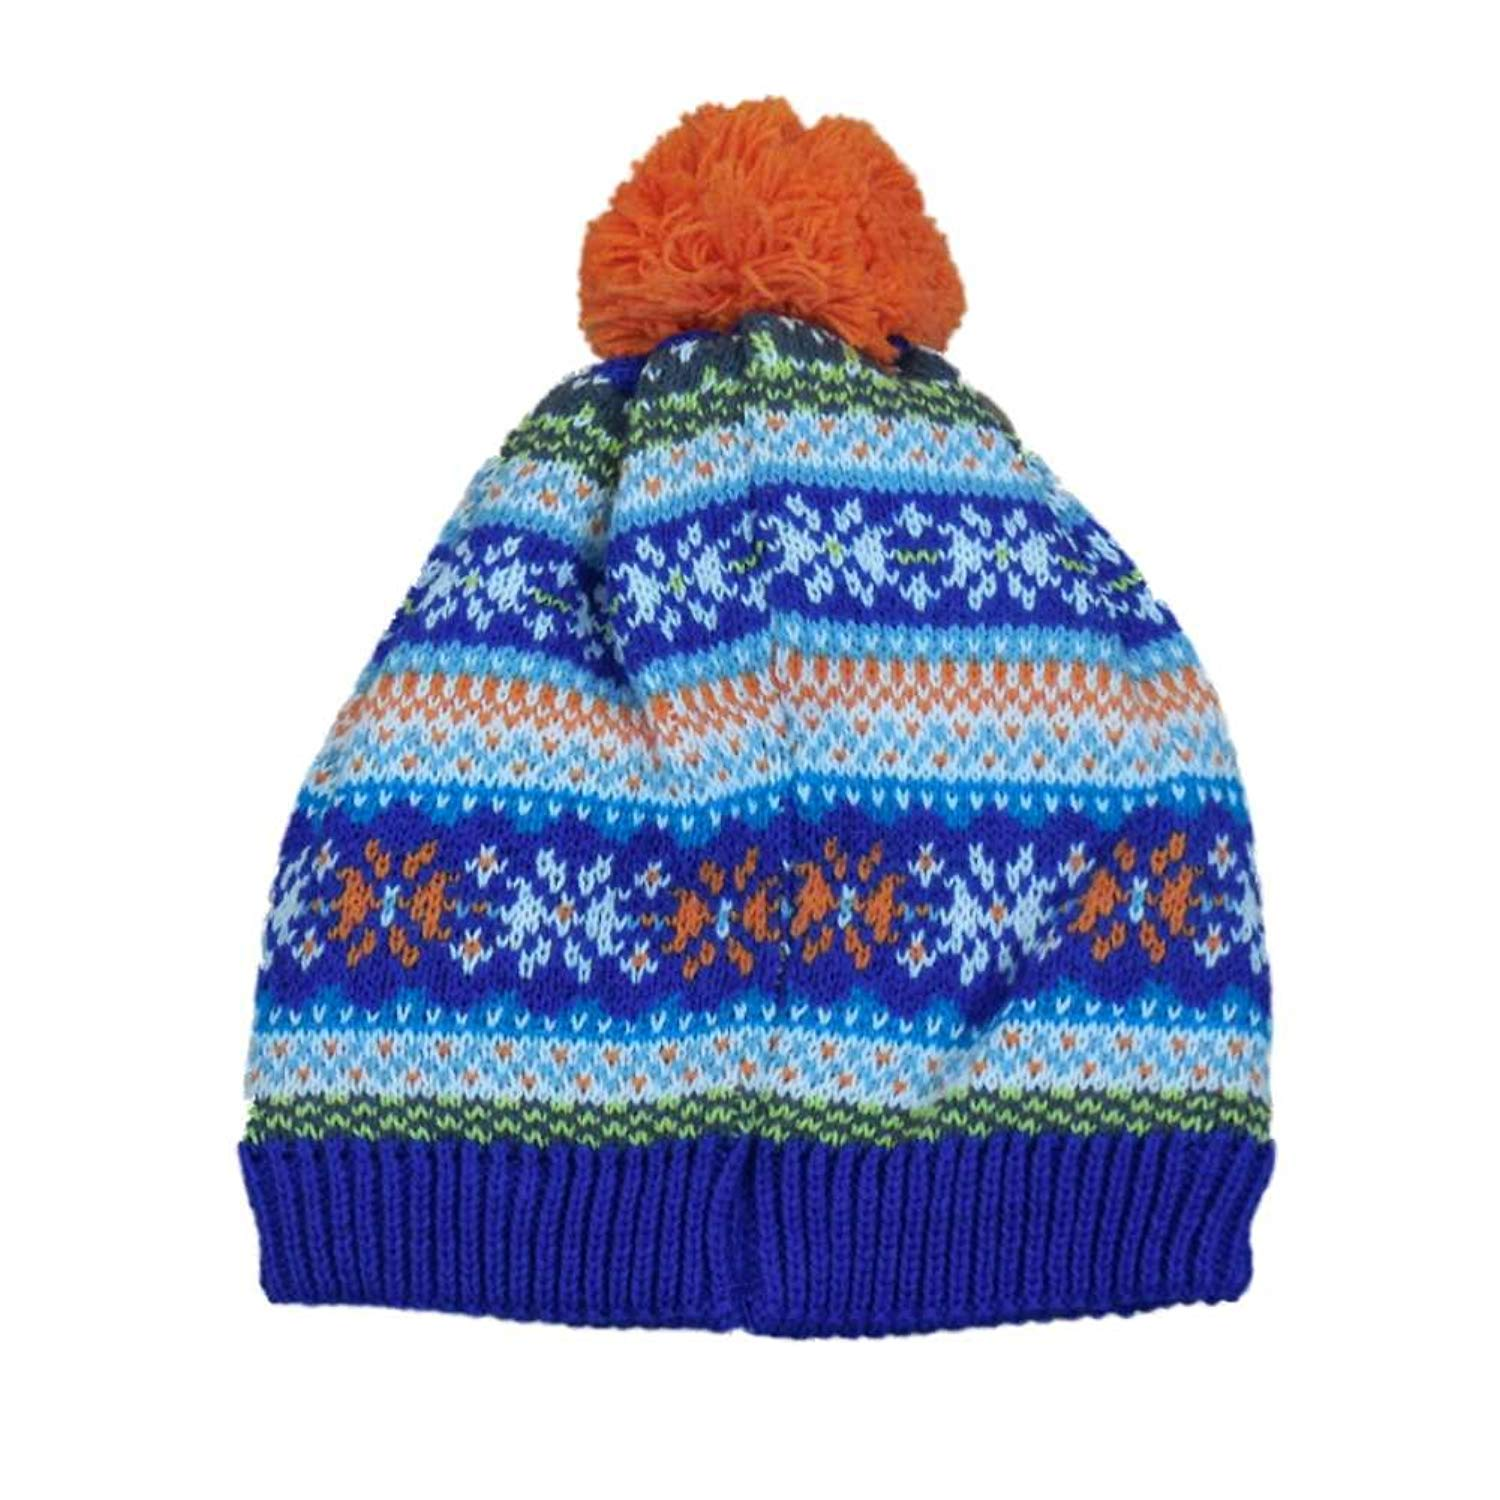 42f78a138 Cheap Nordic Hat, find Nordic Hat deals on line at Alibaba.com